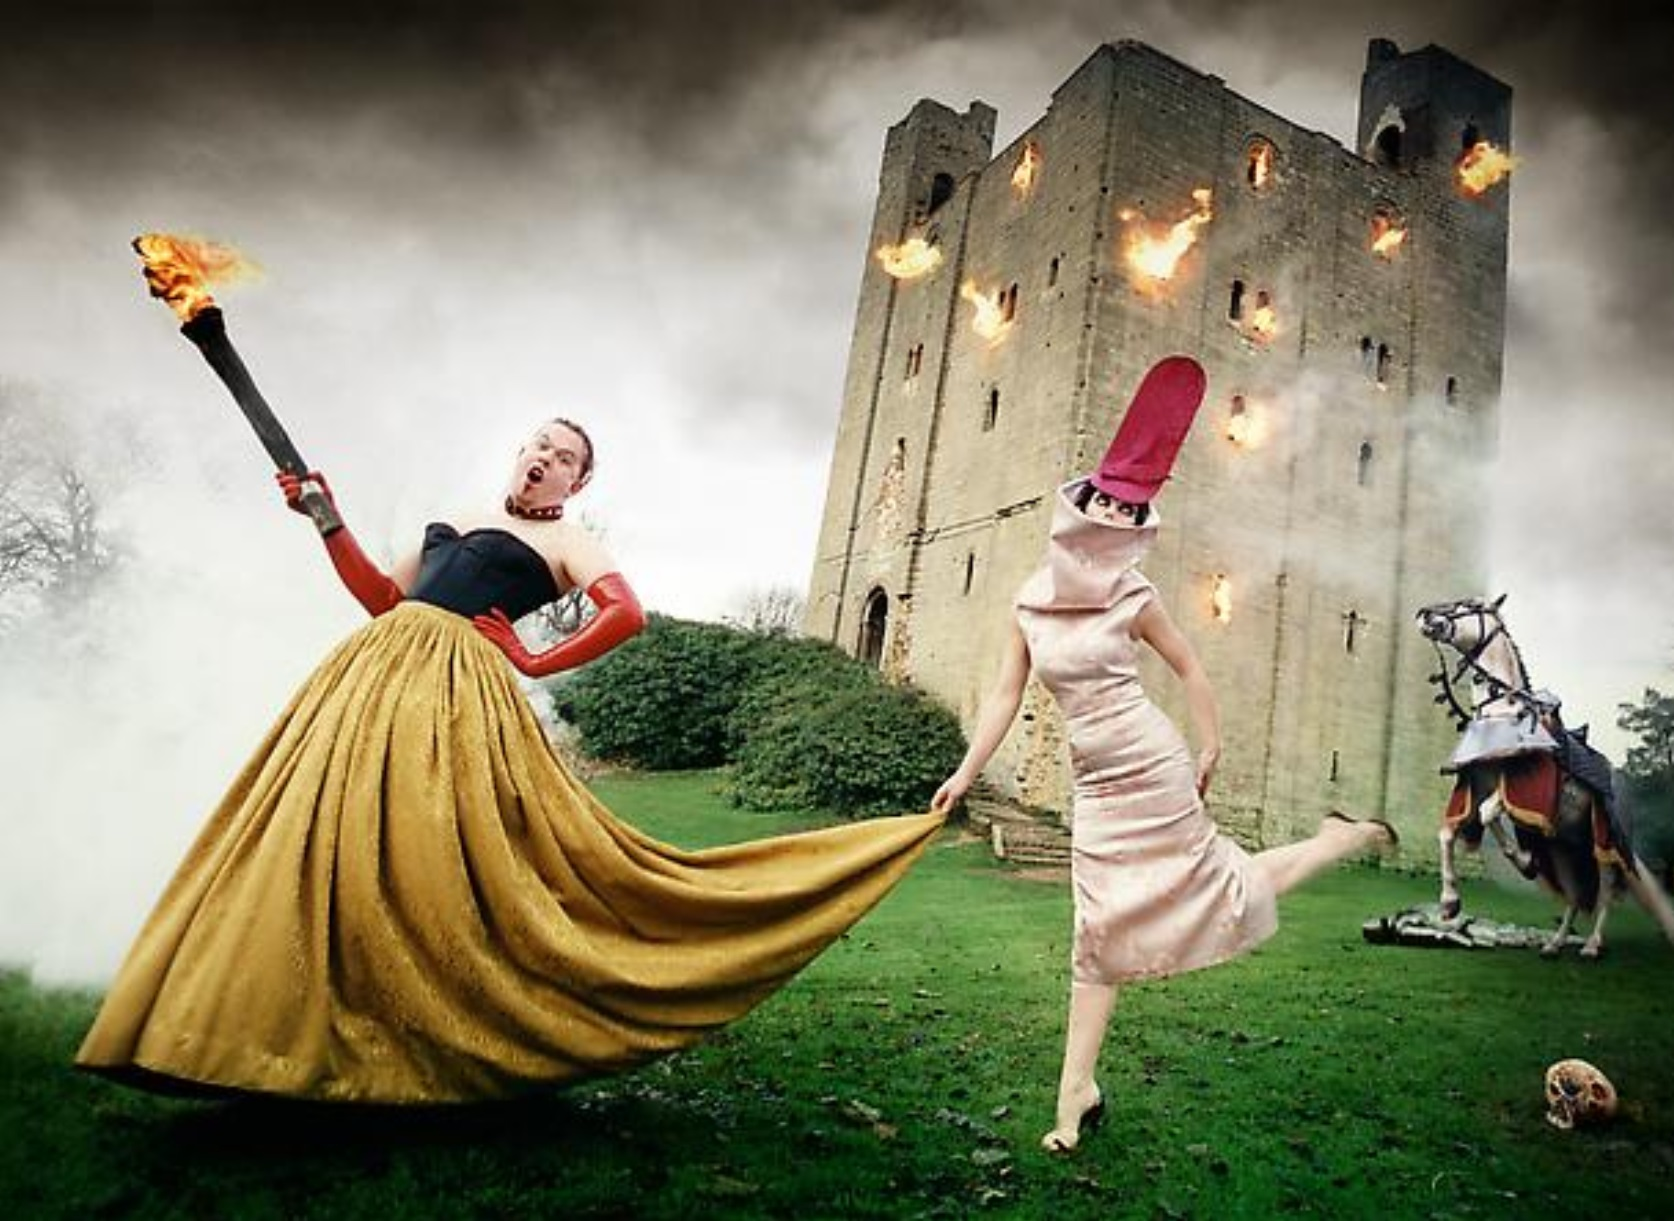 A photograph by David LaChapelle featuring Alexander McQueen and Isabella Blow in gowns in front of a burning castle.